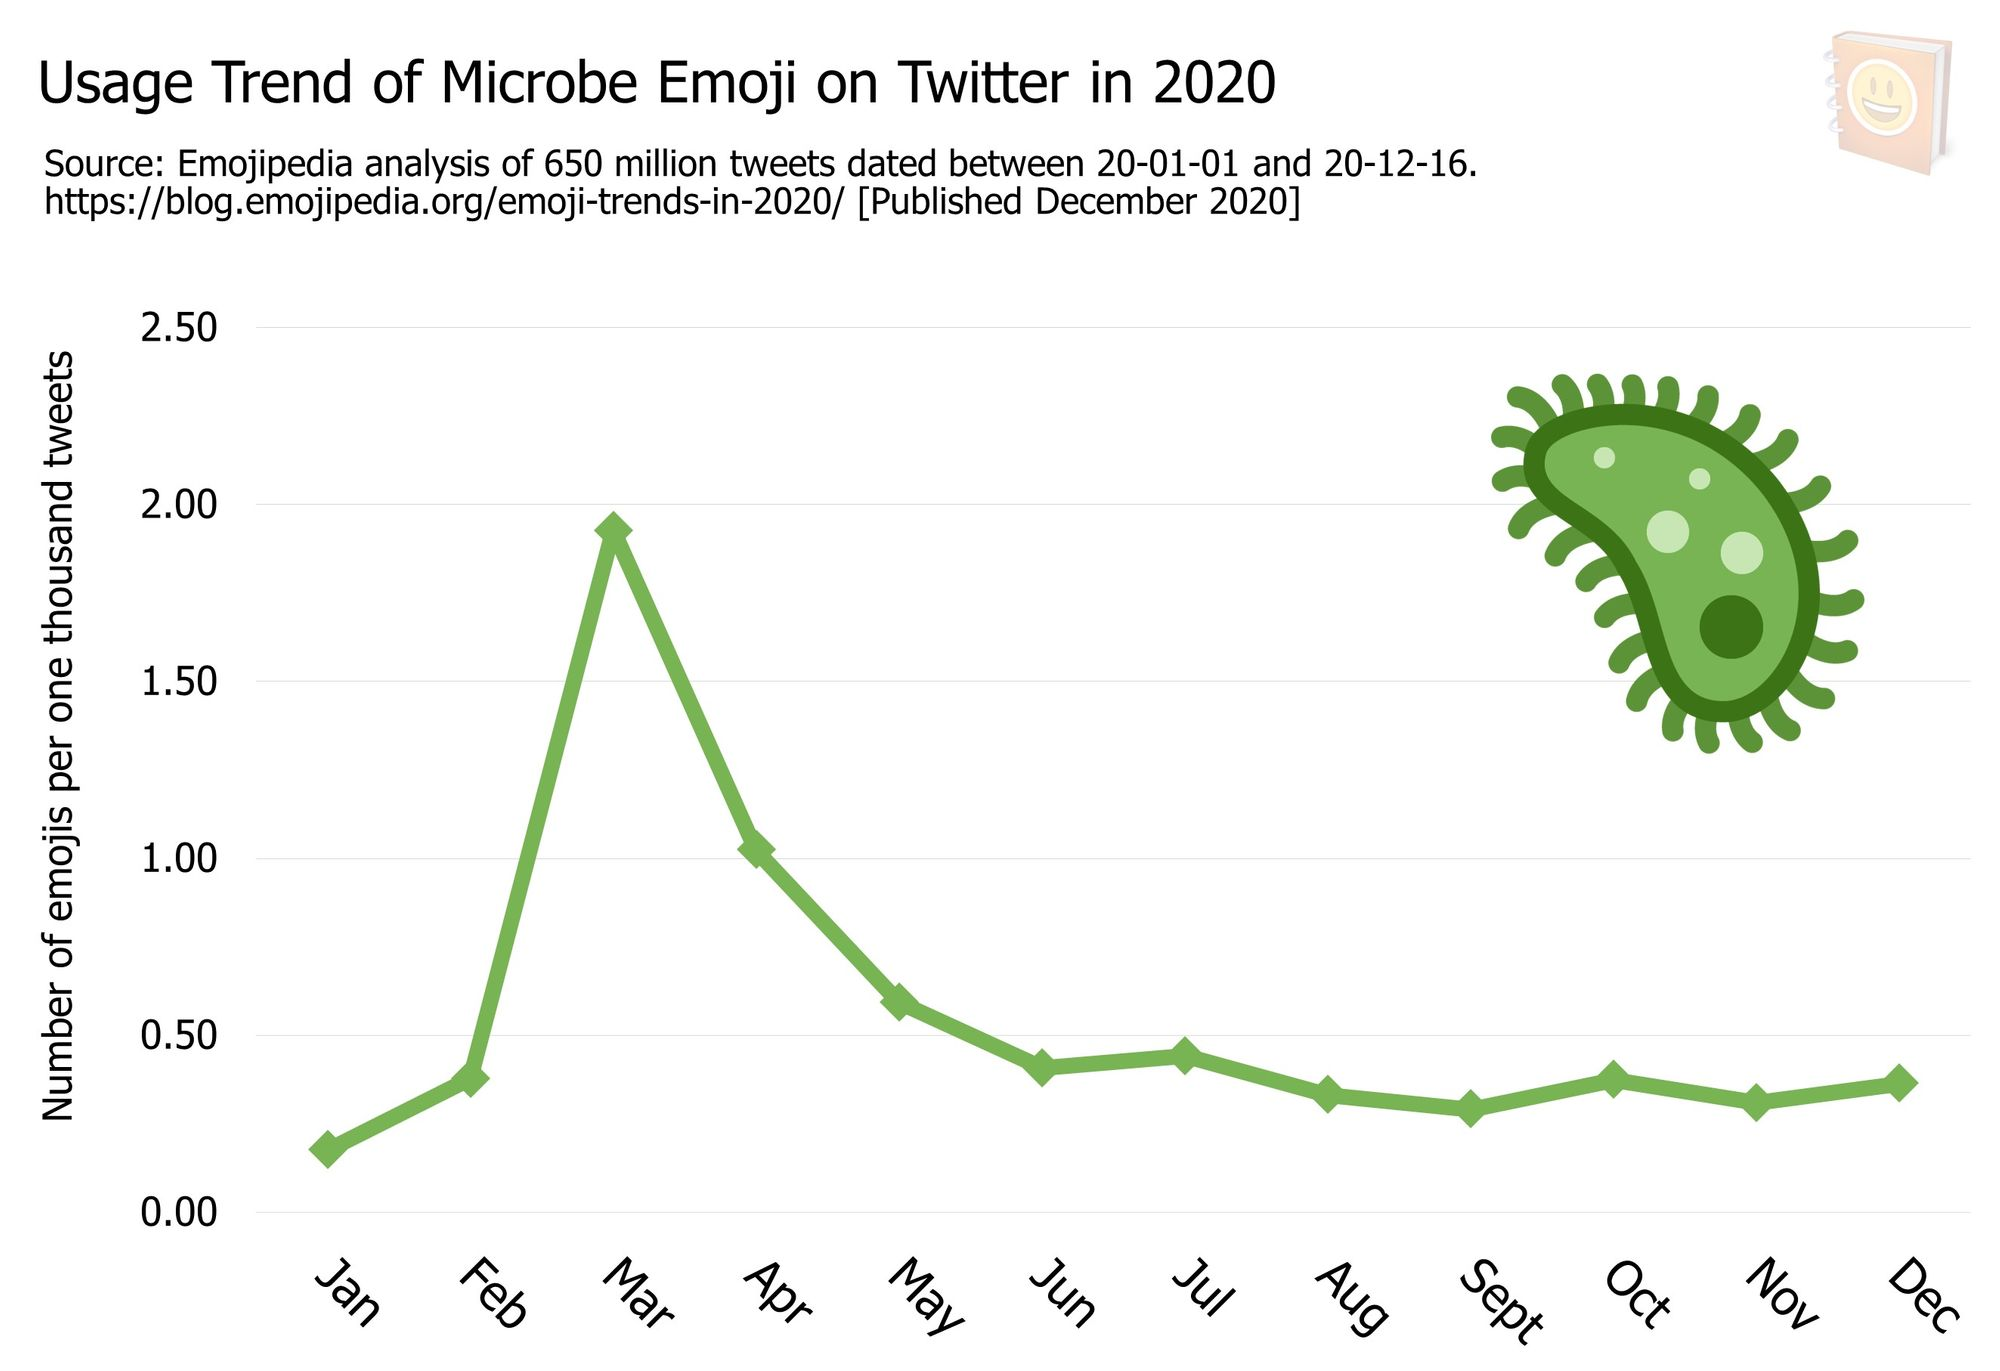 Emoji-Trends-In-2020---Usage-Trend-of-Microbe-Emoji-on-Twitter-in-2020